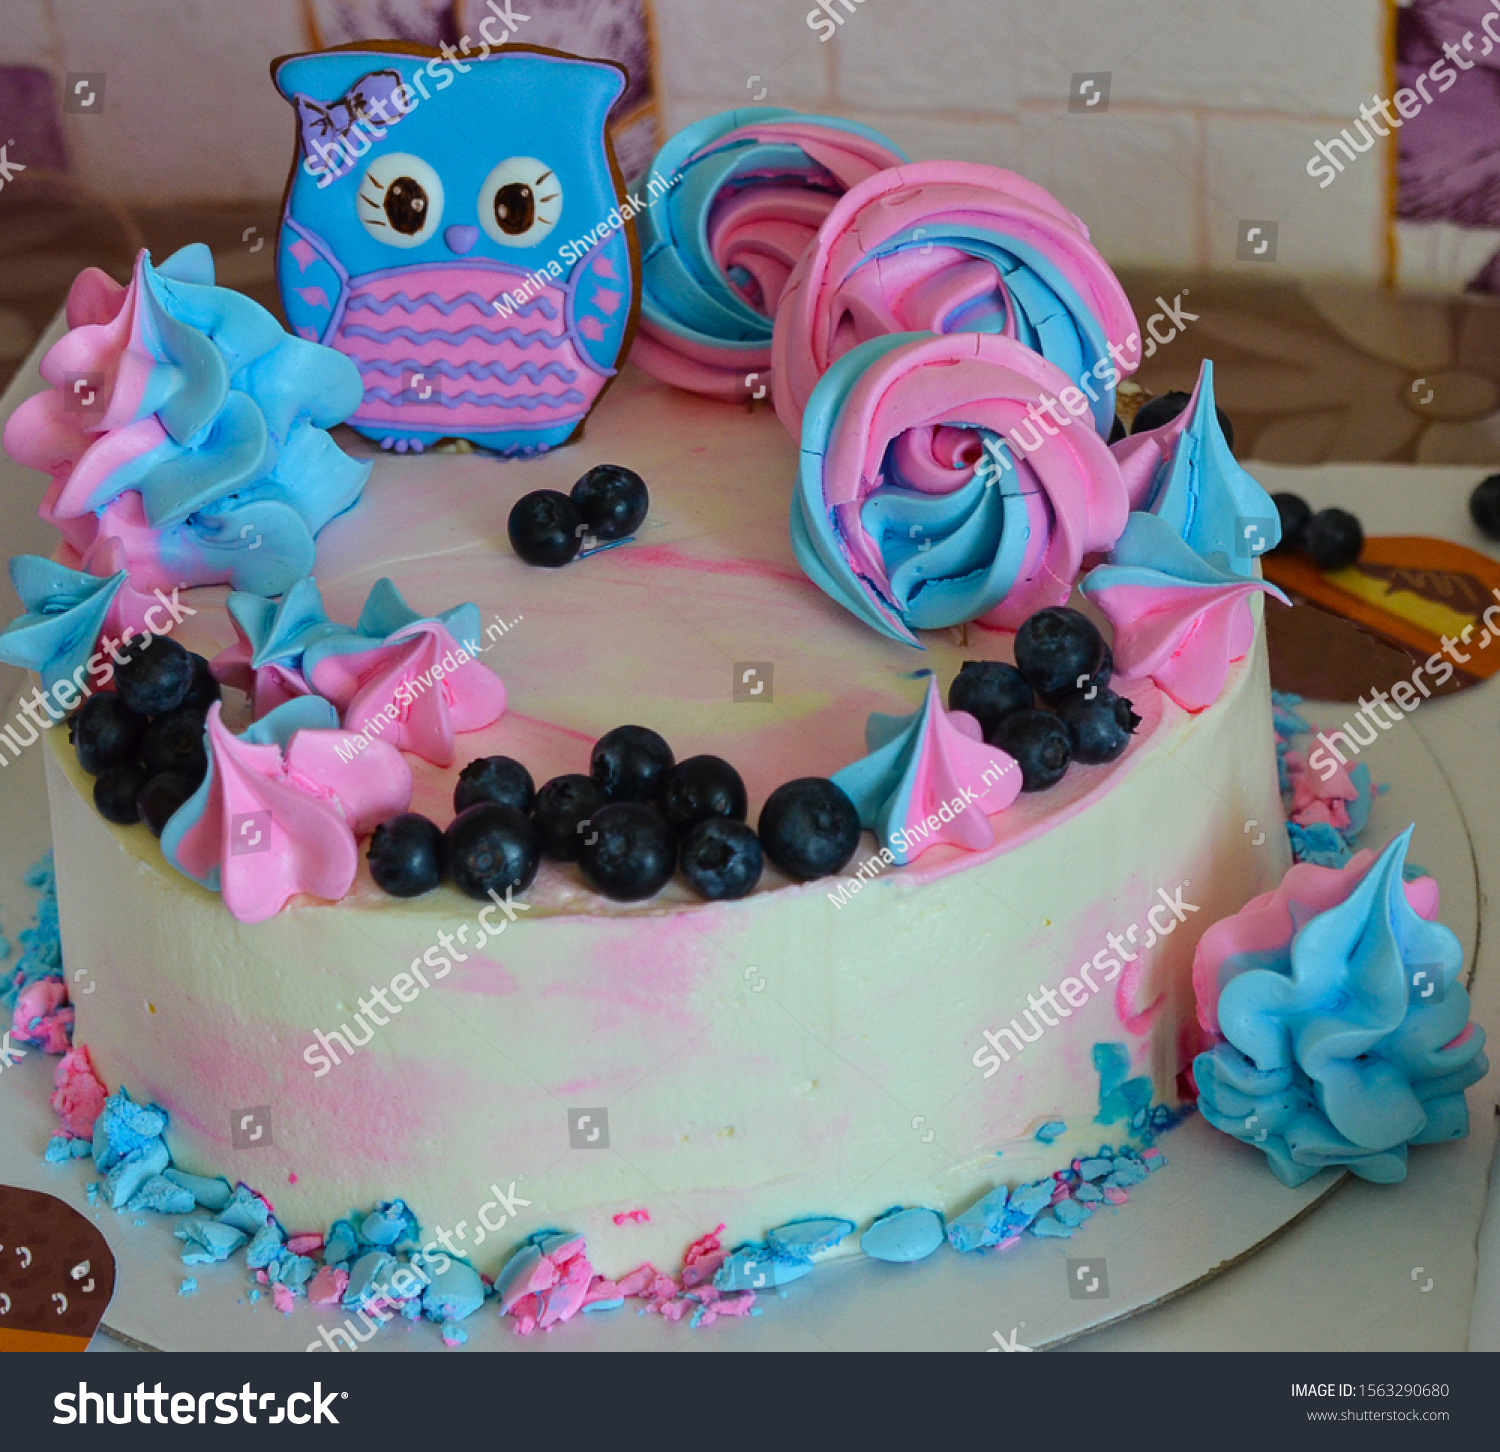 Super Birthday Cake Blue Pink Owl Figure Royalty Free Stock Image Funny Birthday Cards Online Elaedamsfinfo